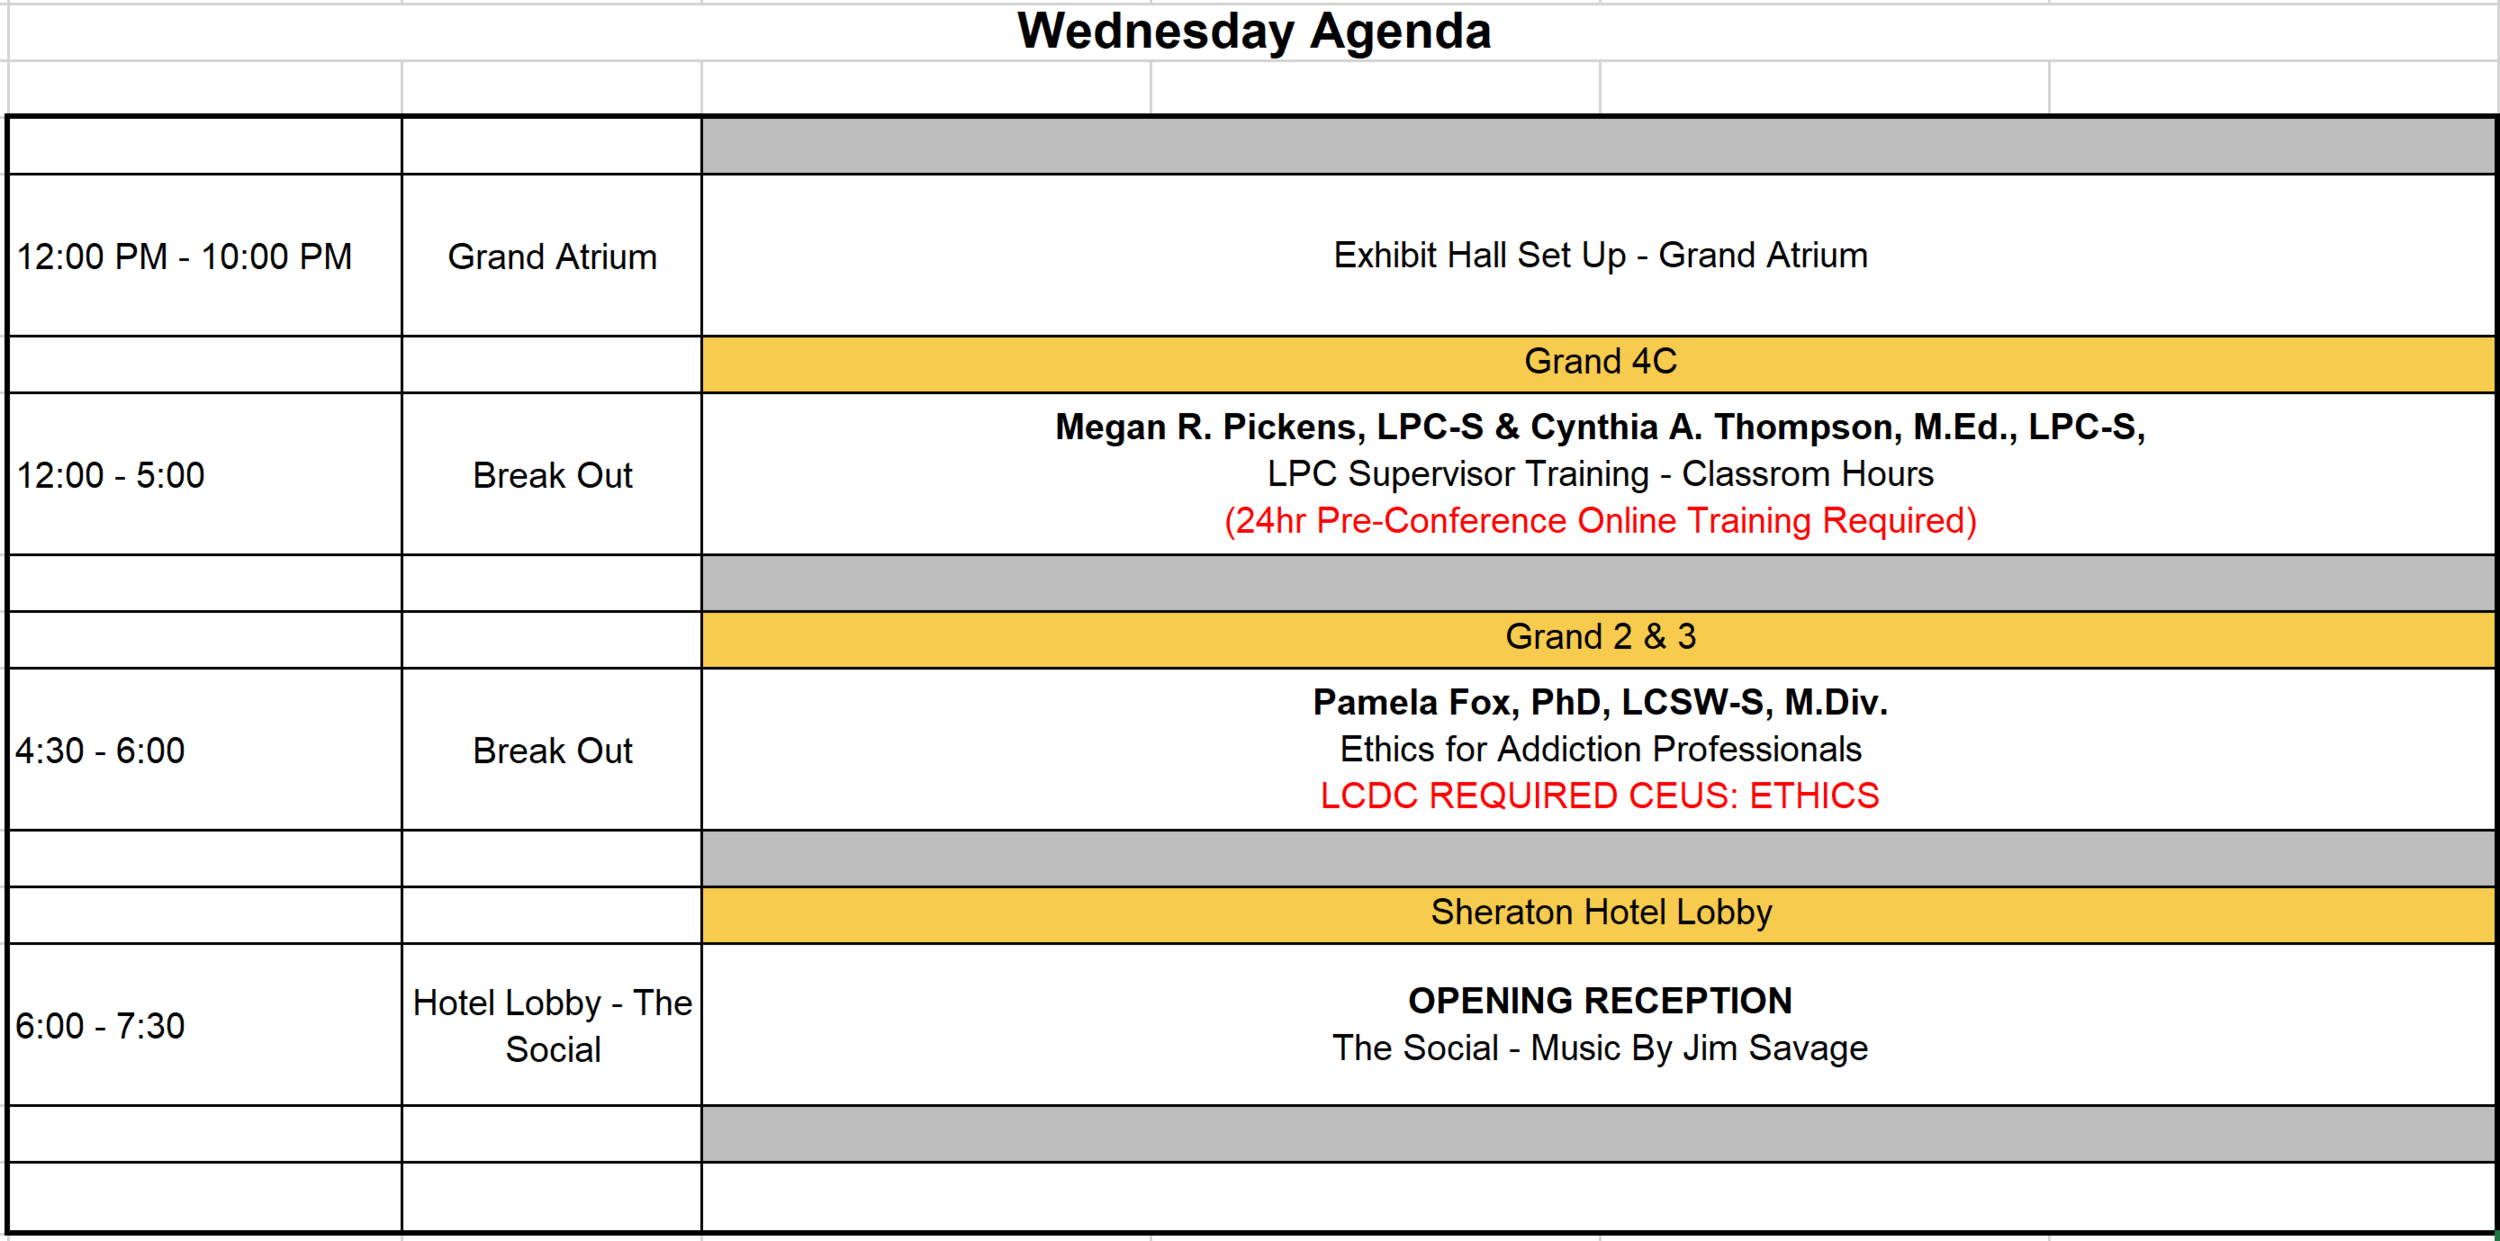 Wednesday Agenda 2019.PNG